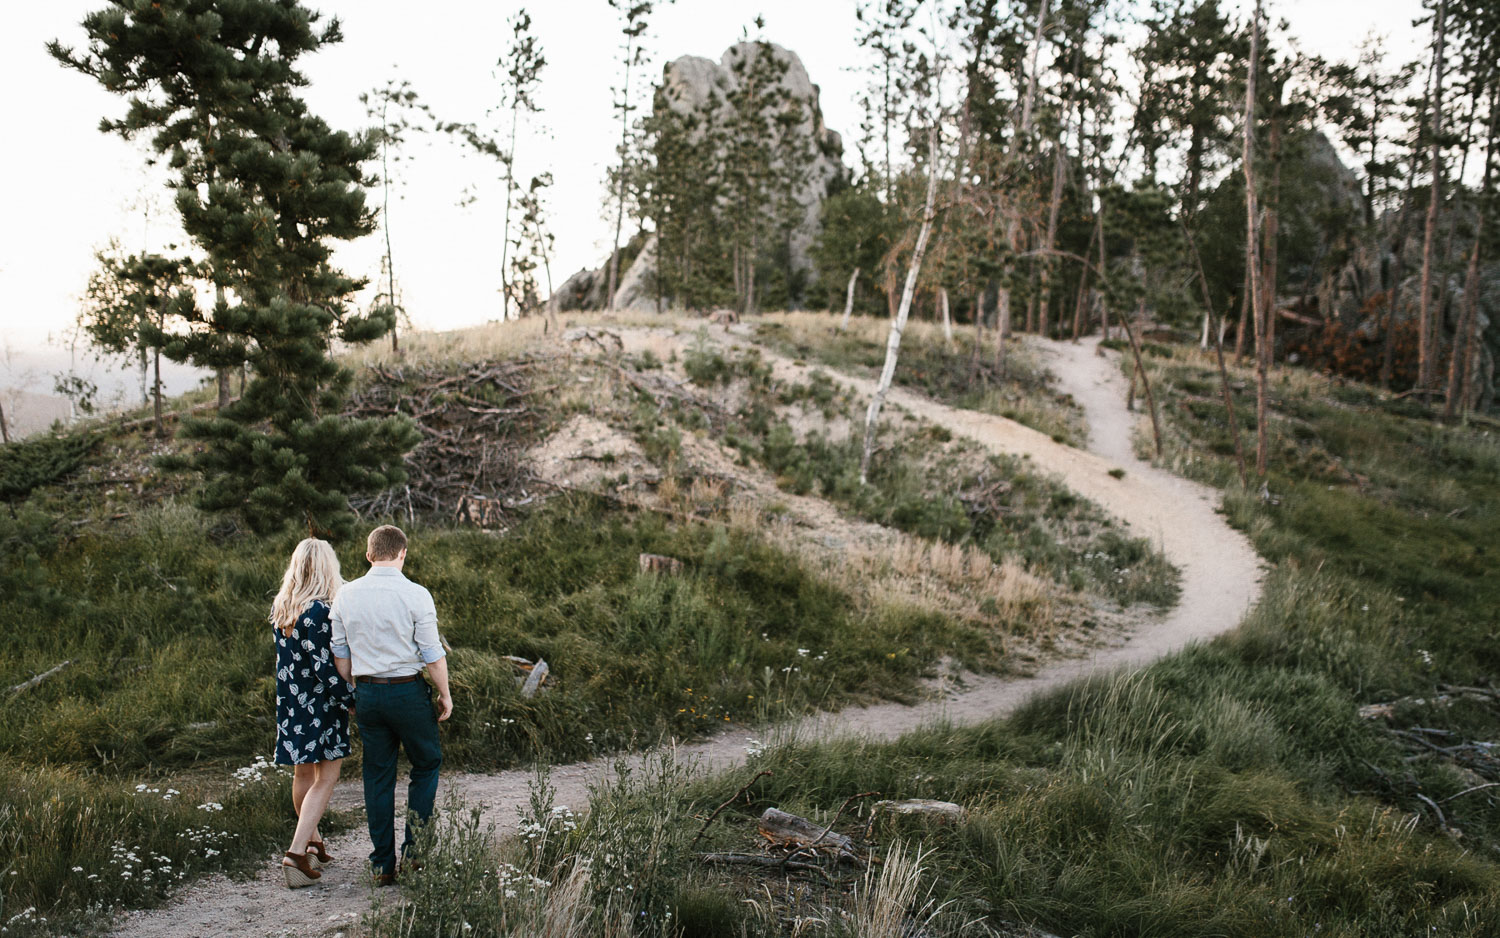 SiouxFalls_BlackHills_Adventure_Engagement_Wedding_Photographer_73.jpg